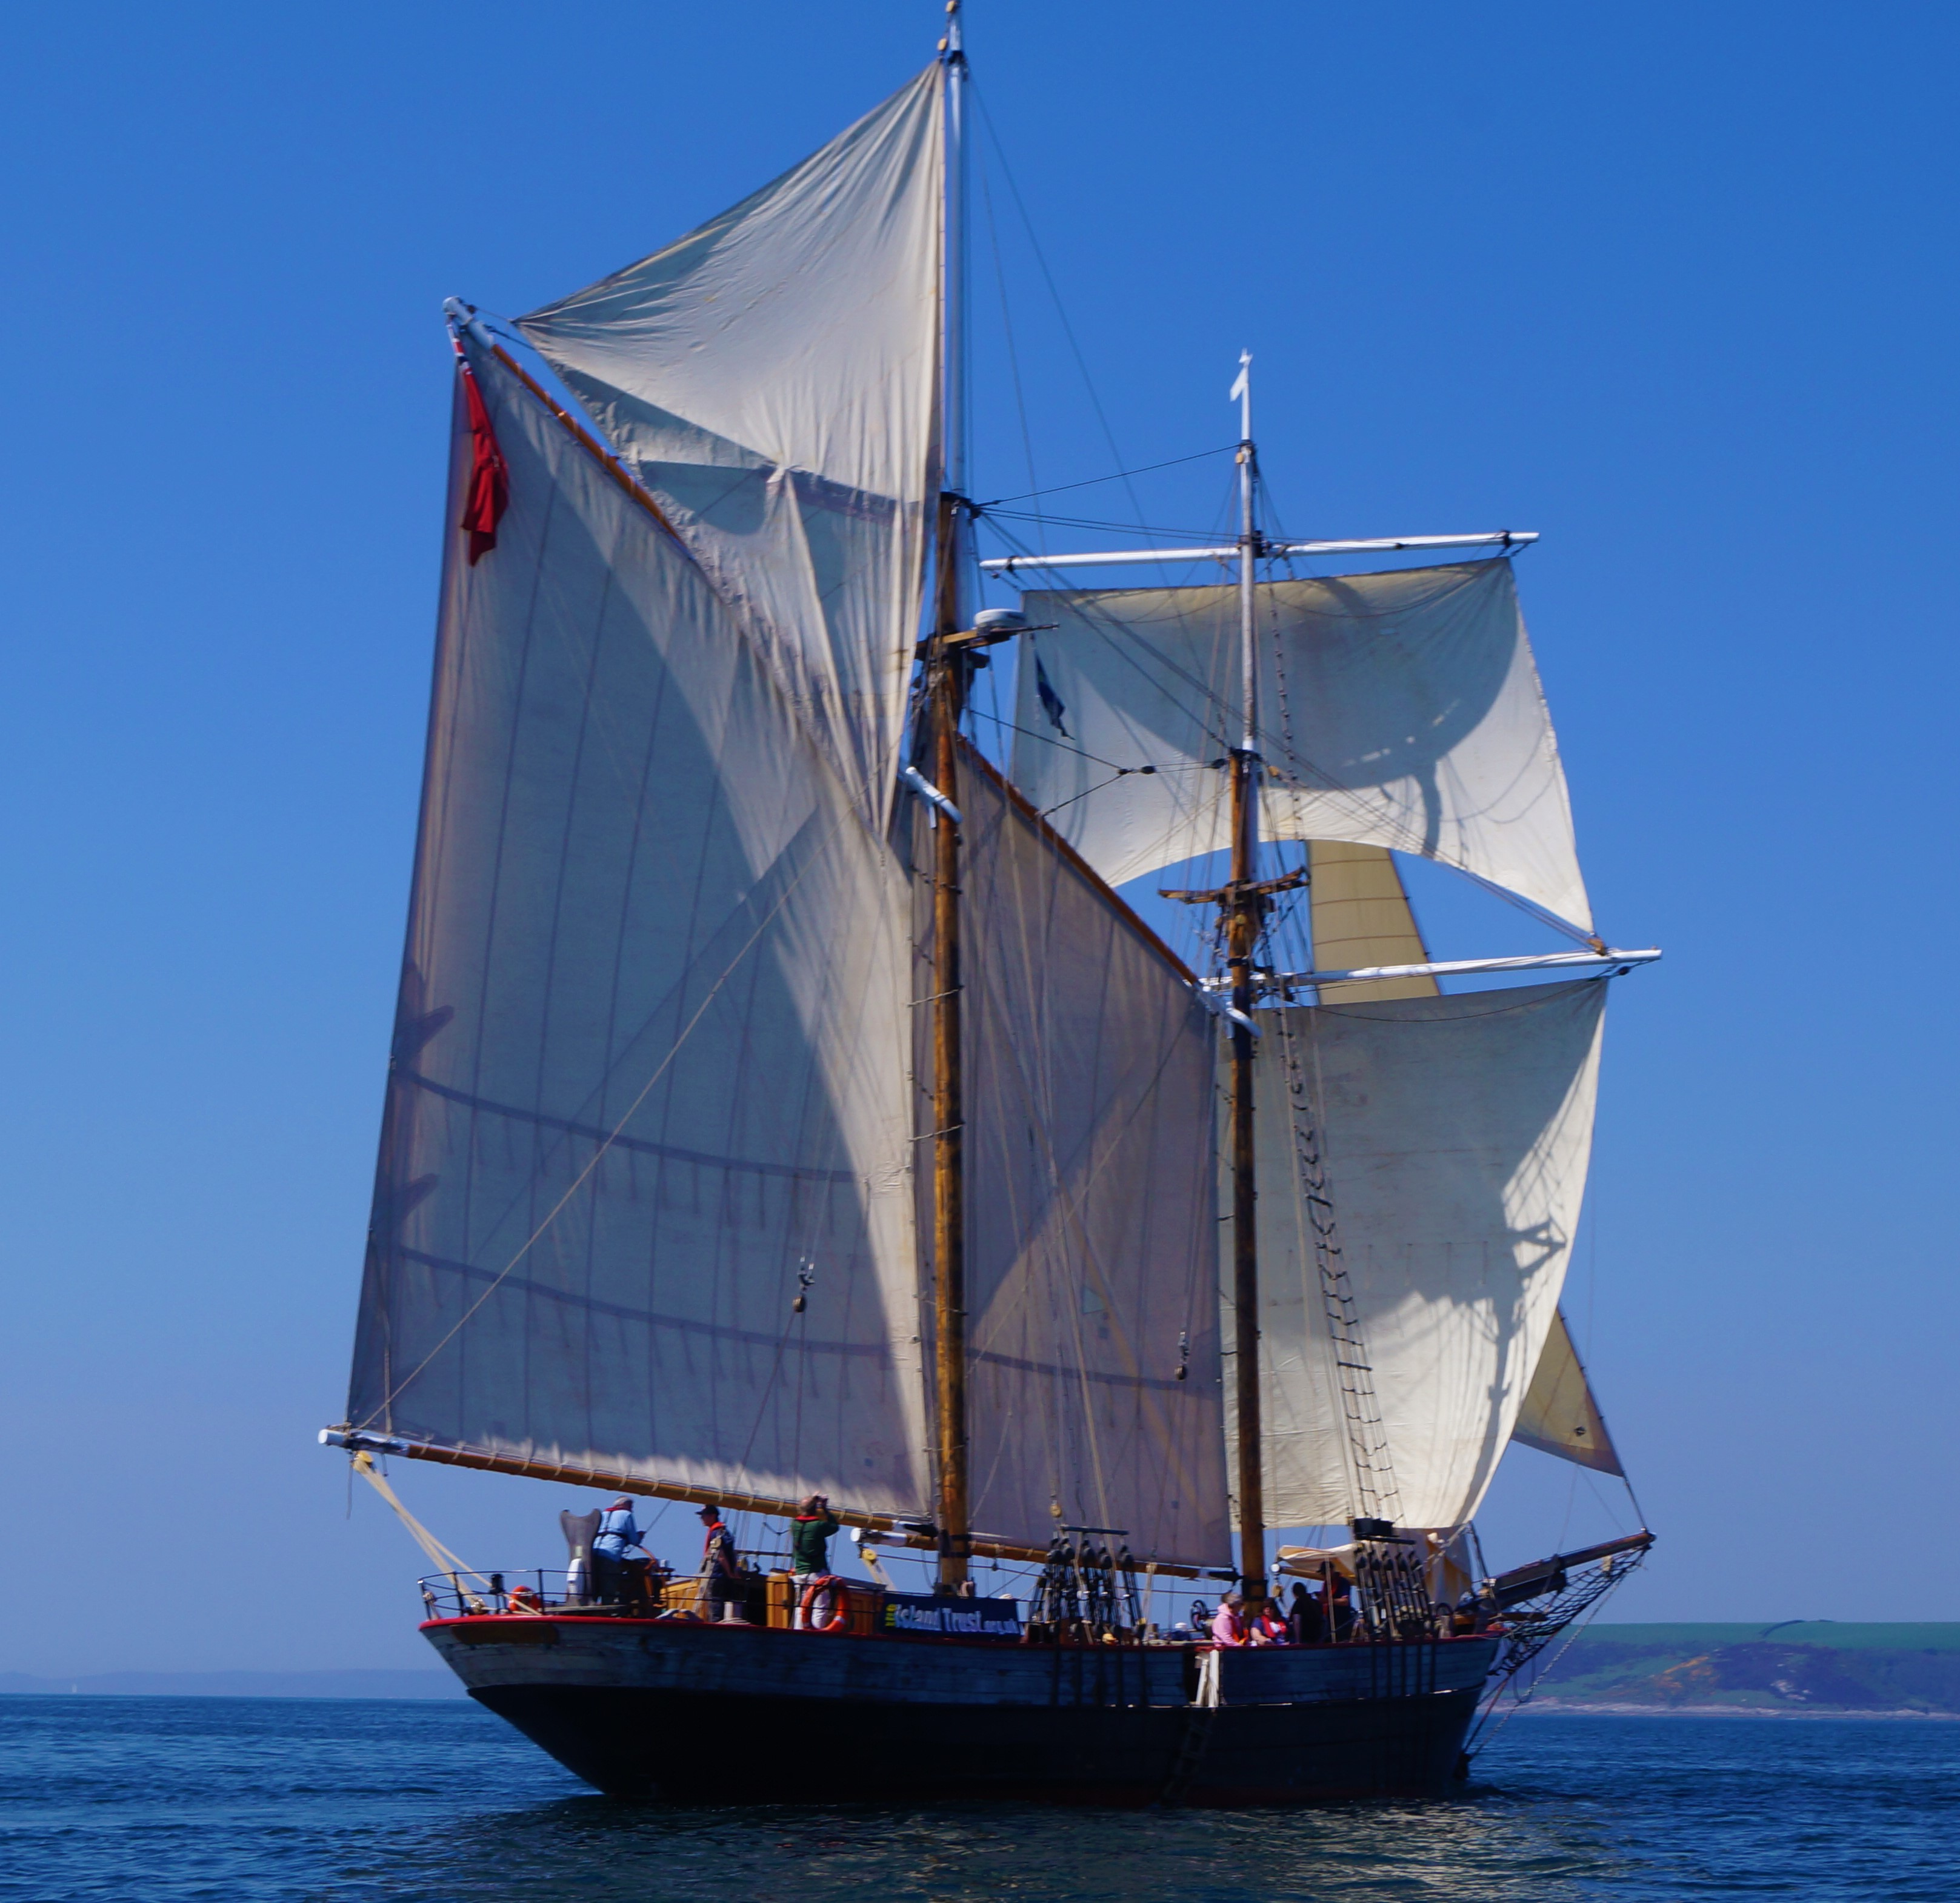 Johanna Lucretia under sail by Susan Lazer